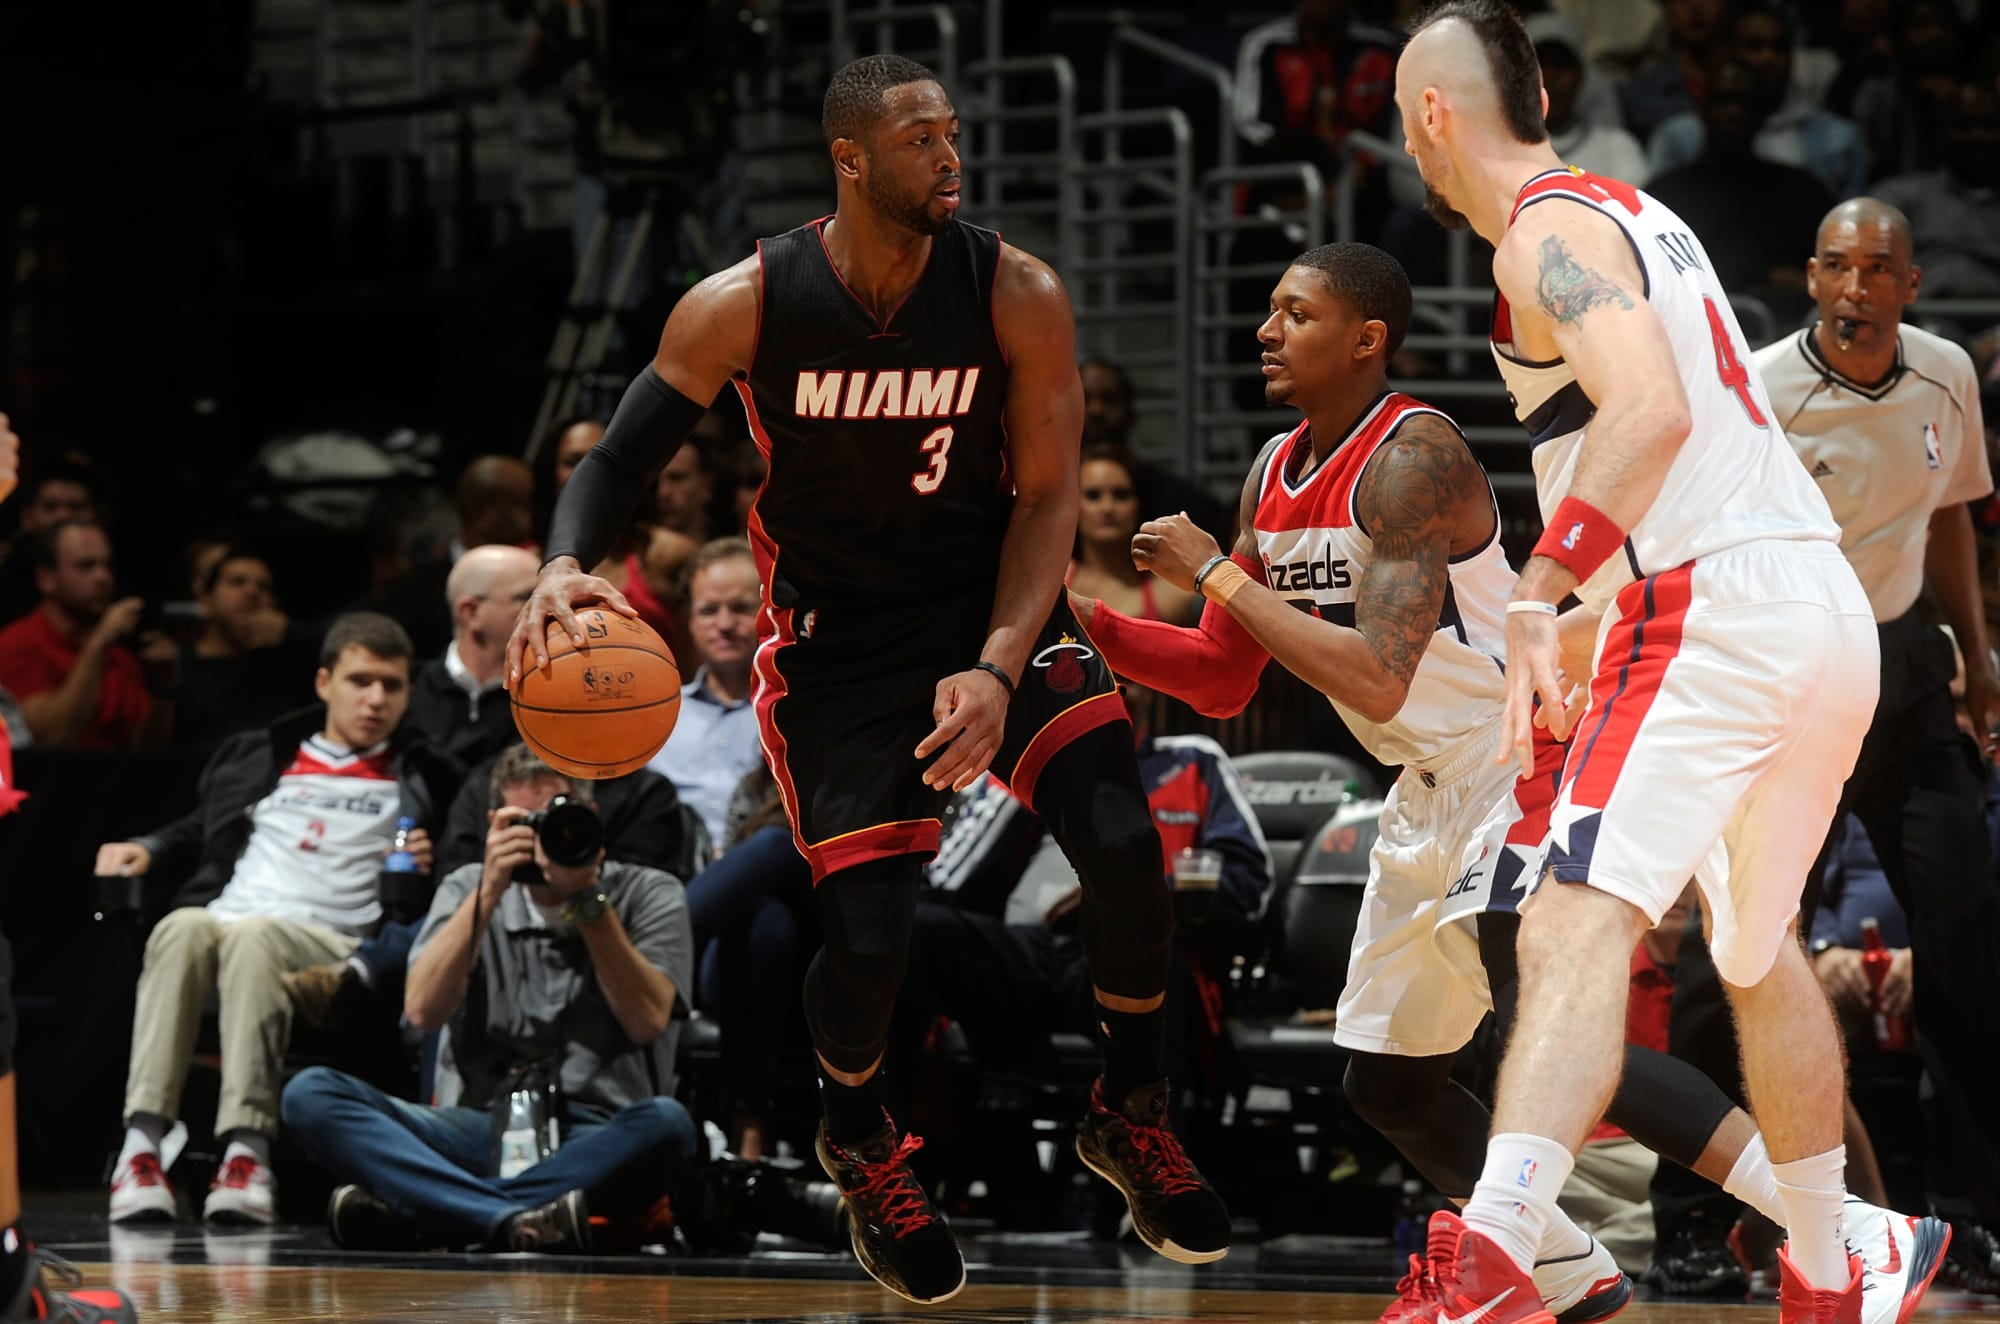 Miami Heat champs Dwyane Wade & Ray Allen helped shape Bradley Beal